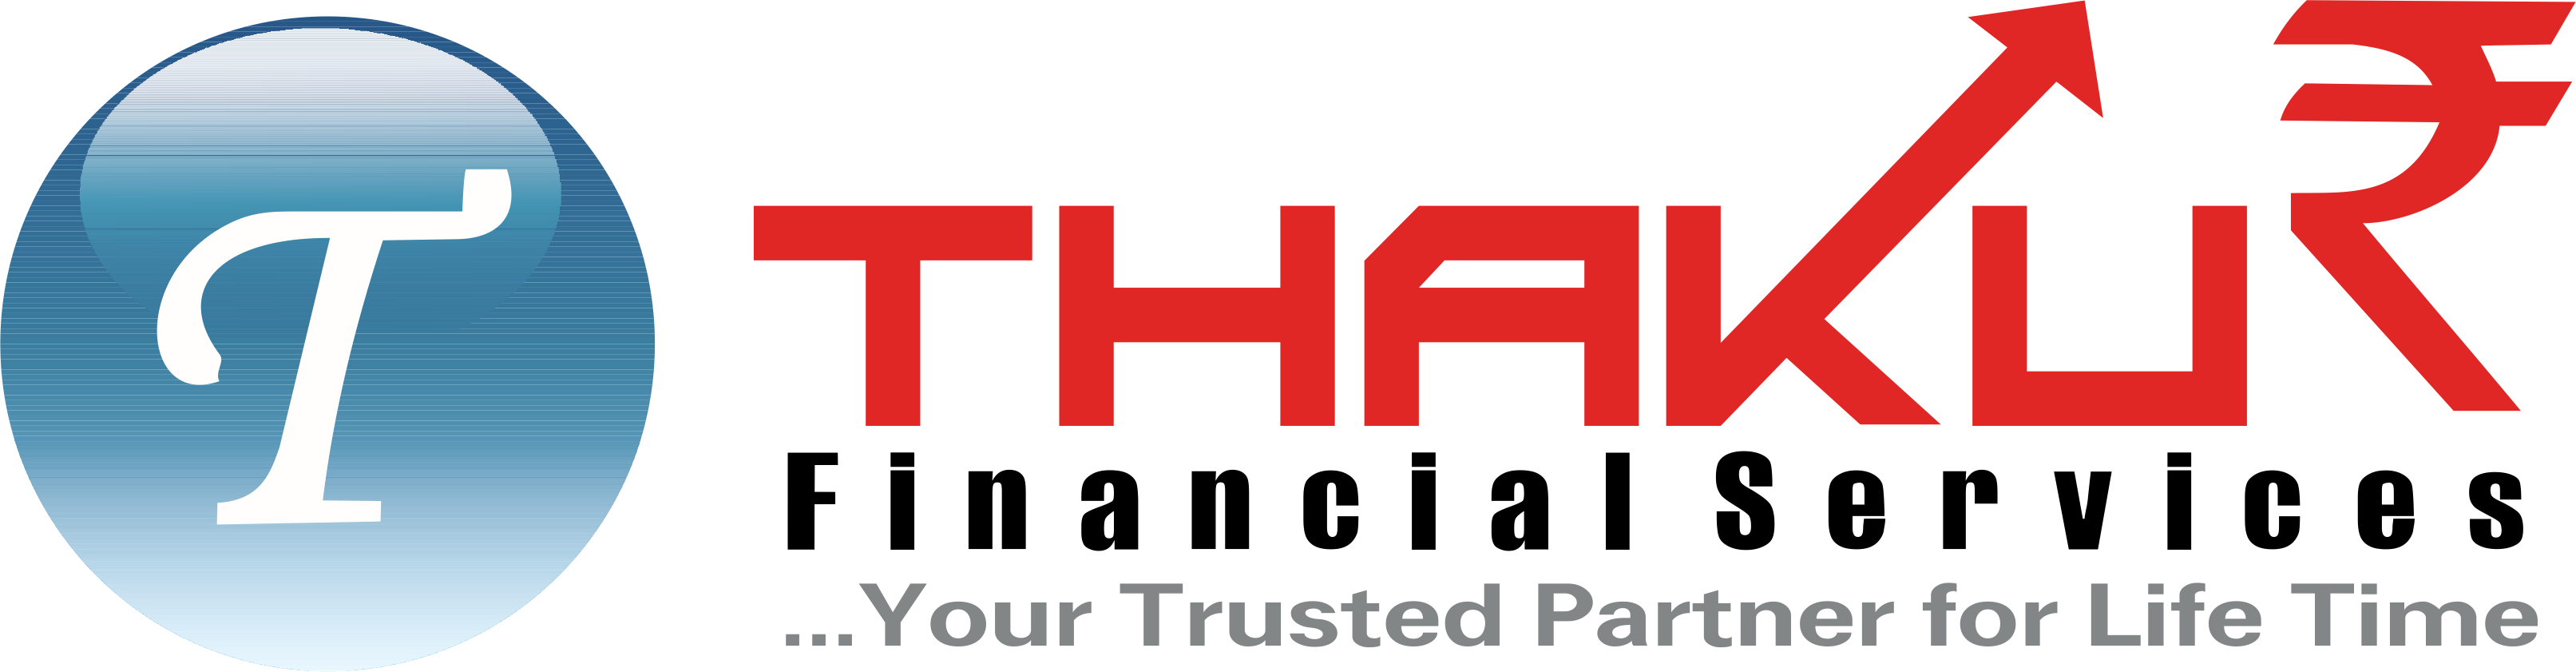 Thakur Financial Services